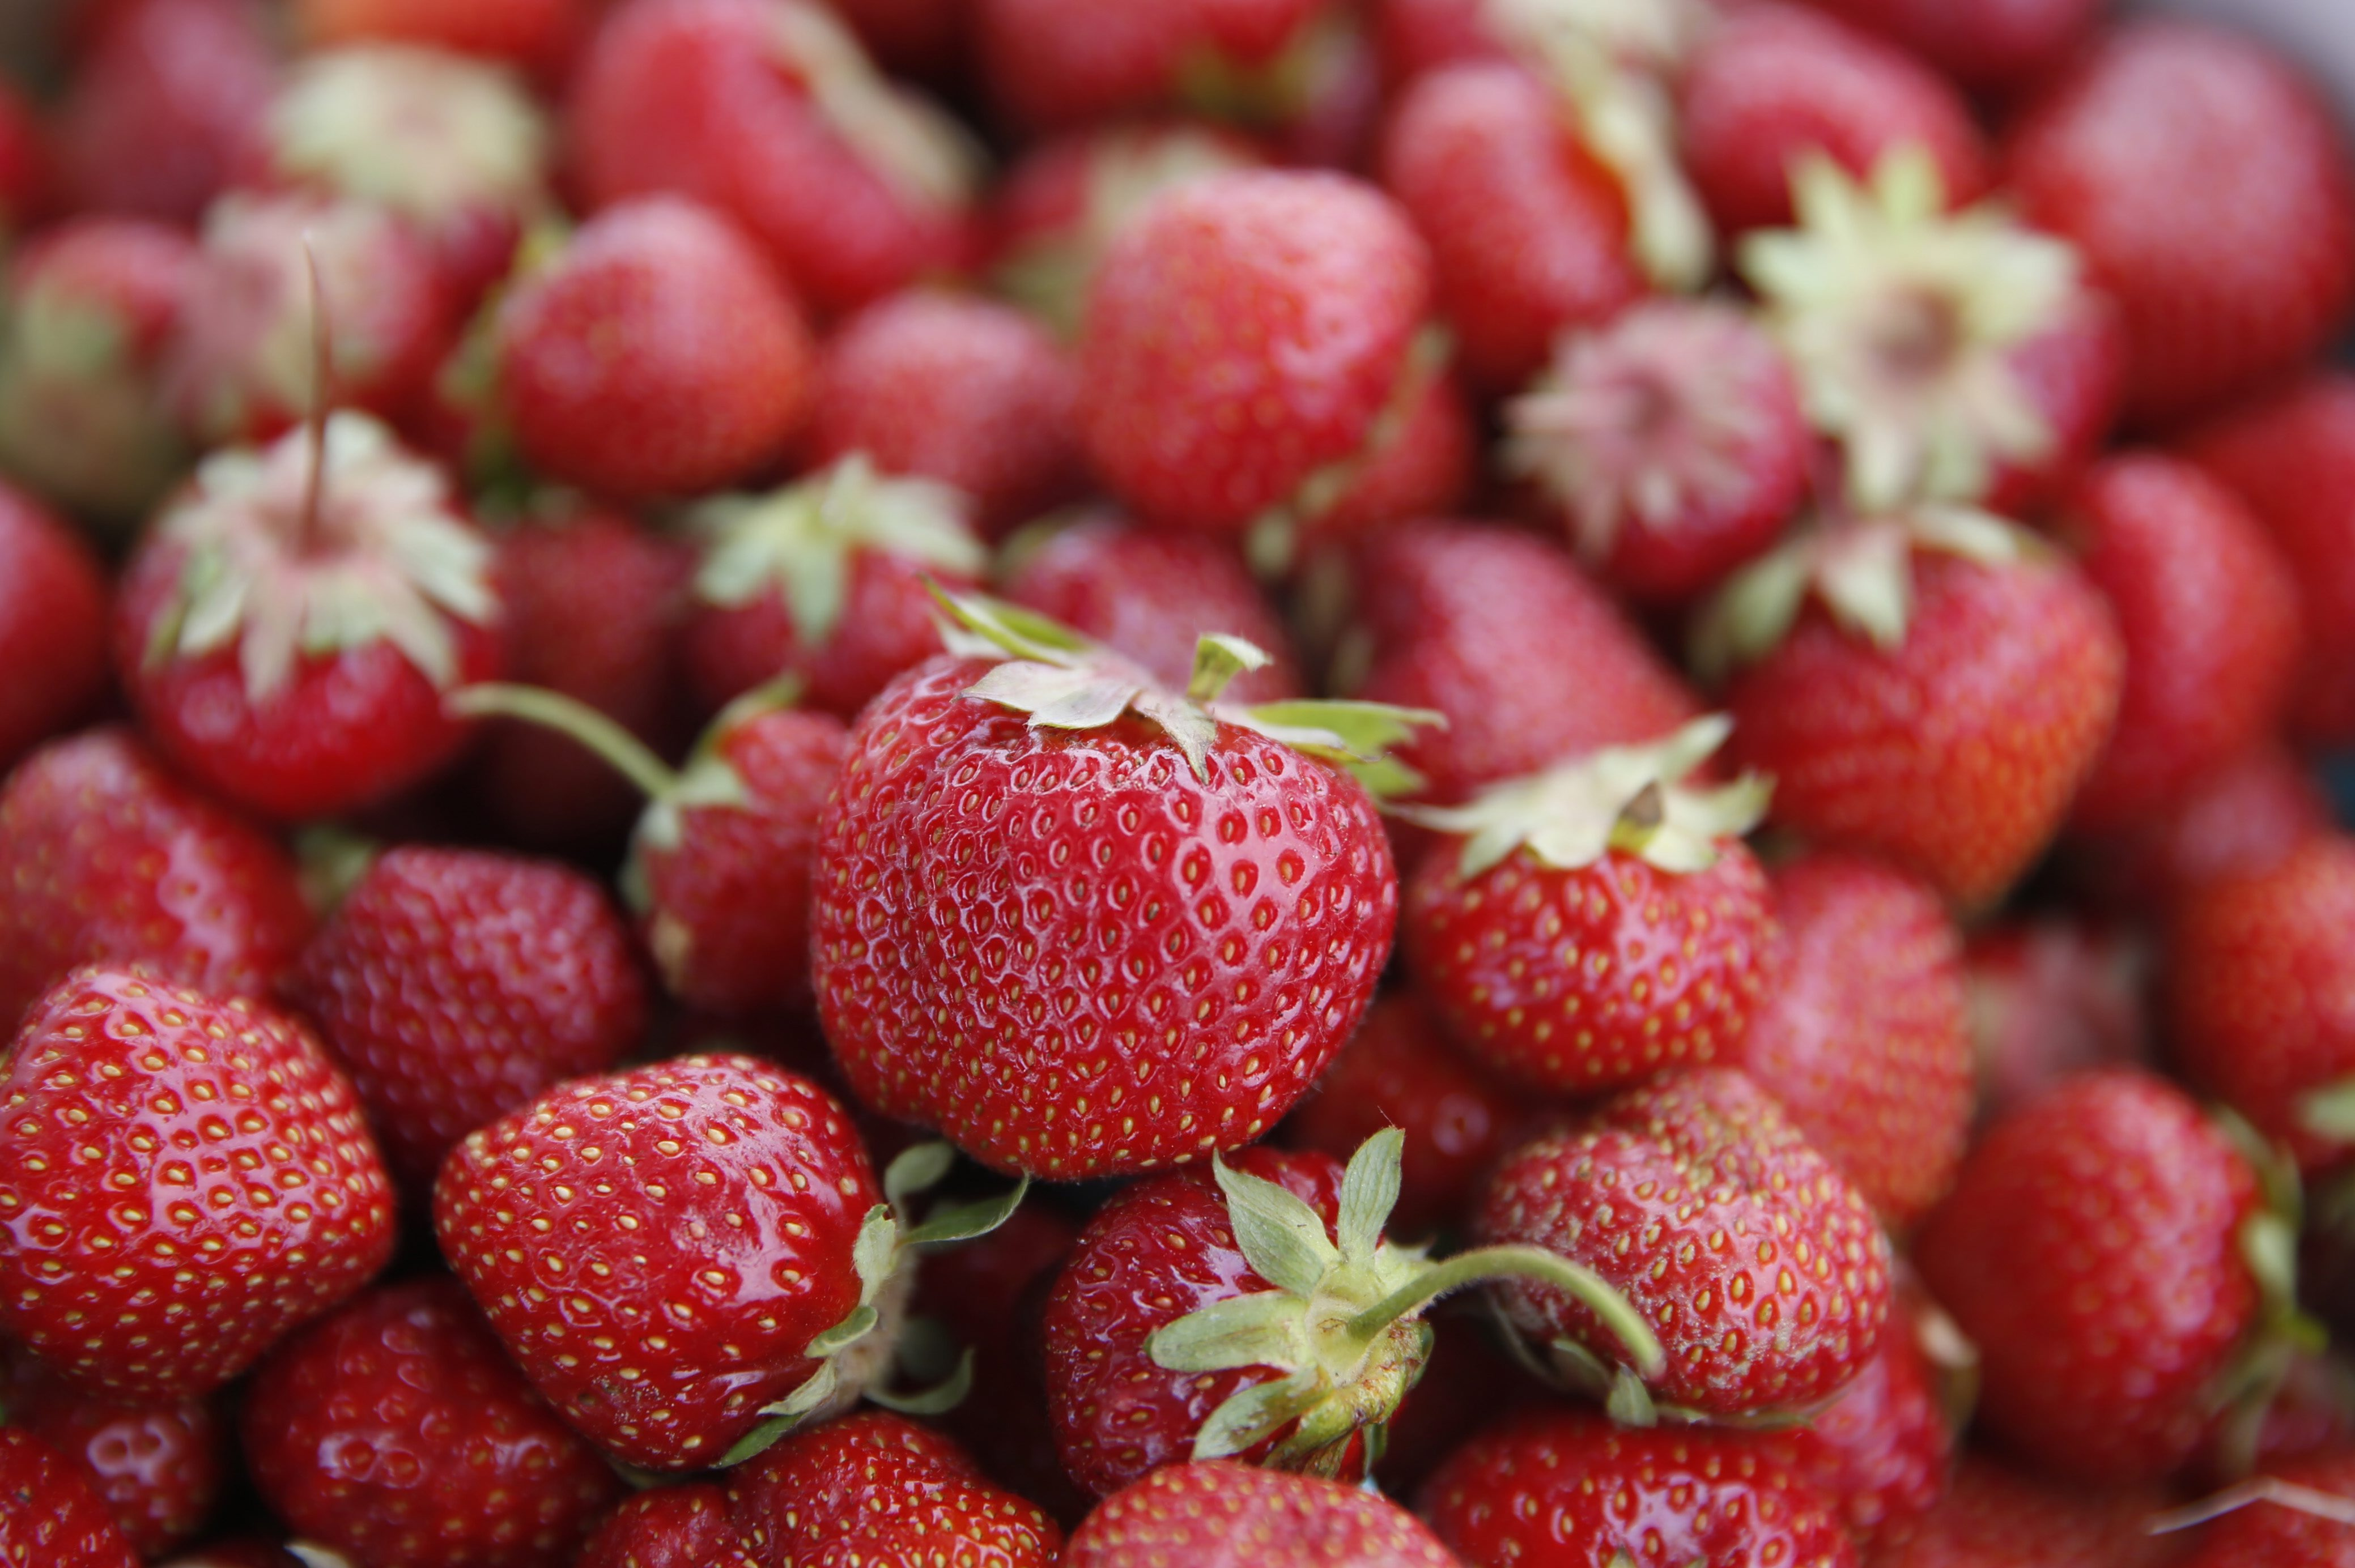 Strawberry's at Greg's U-Pick Farm in Clarence Center,NY  on Monday, June 20, 2016. (Harry Scull Jr./Buffalo News)